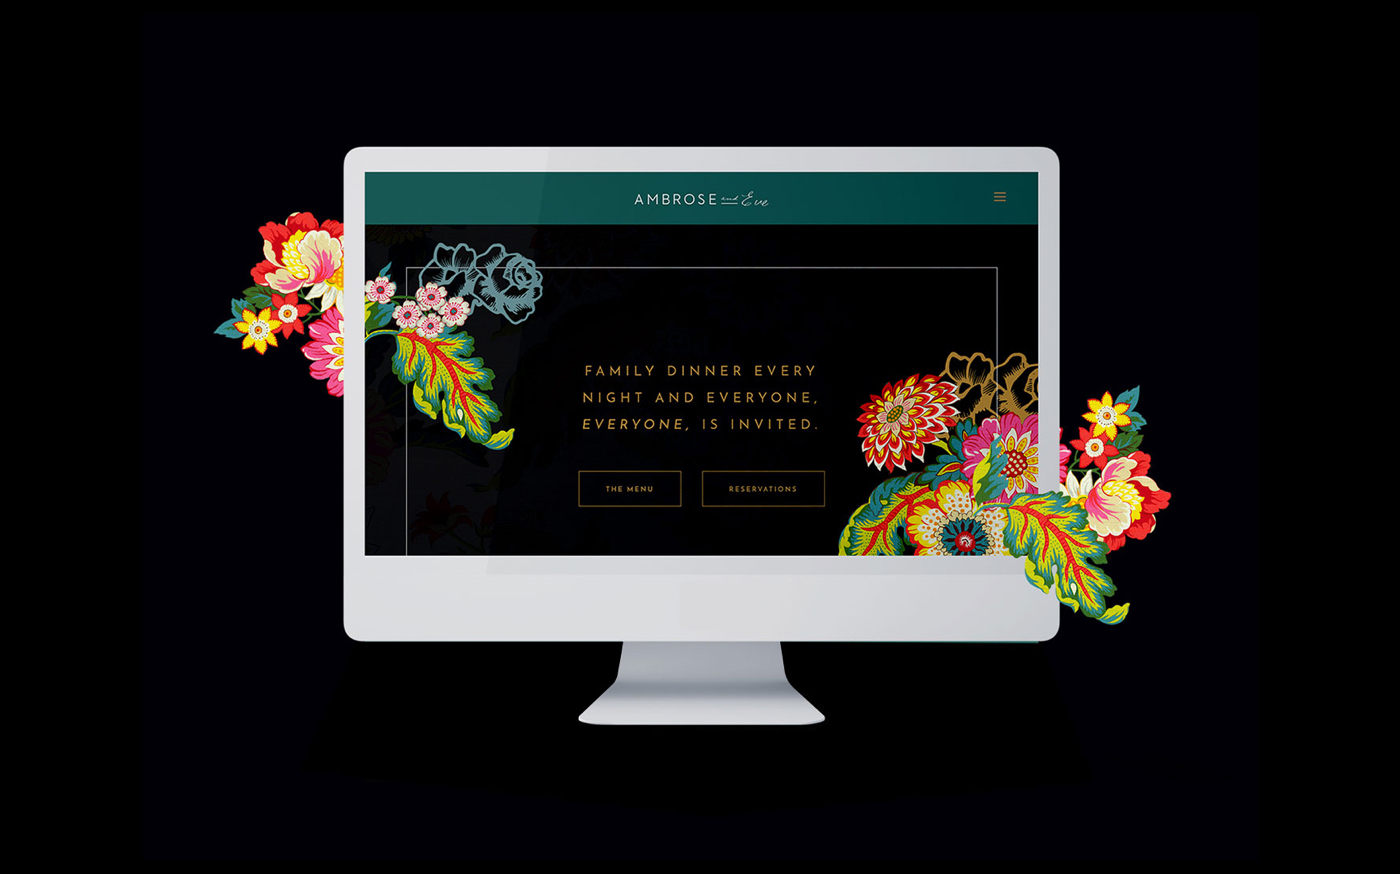 Ambrose & Eve Restaurant Website Design